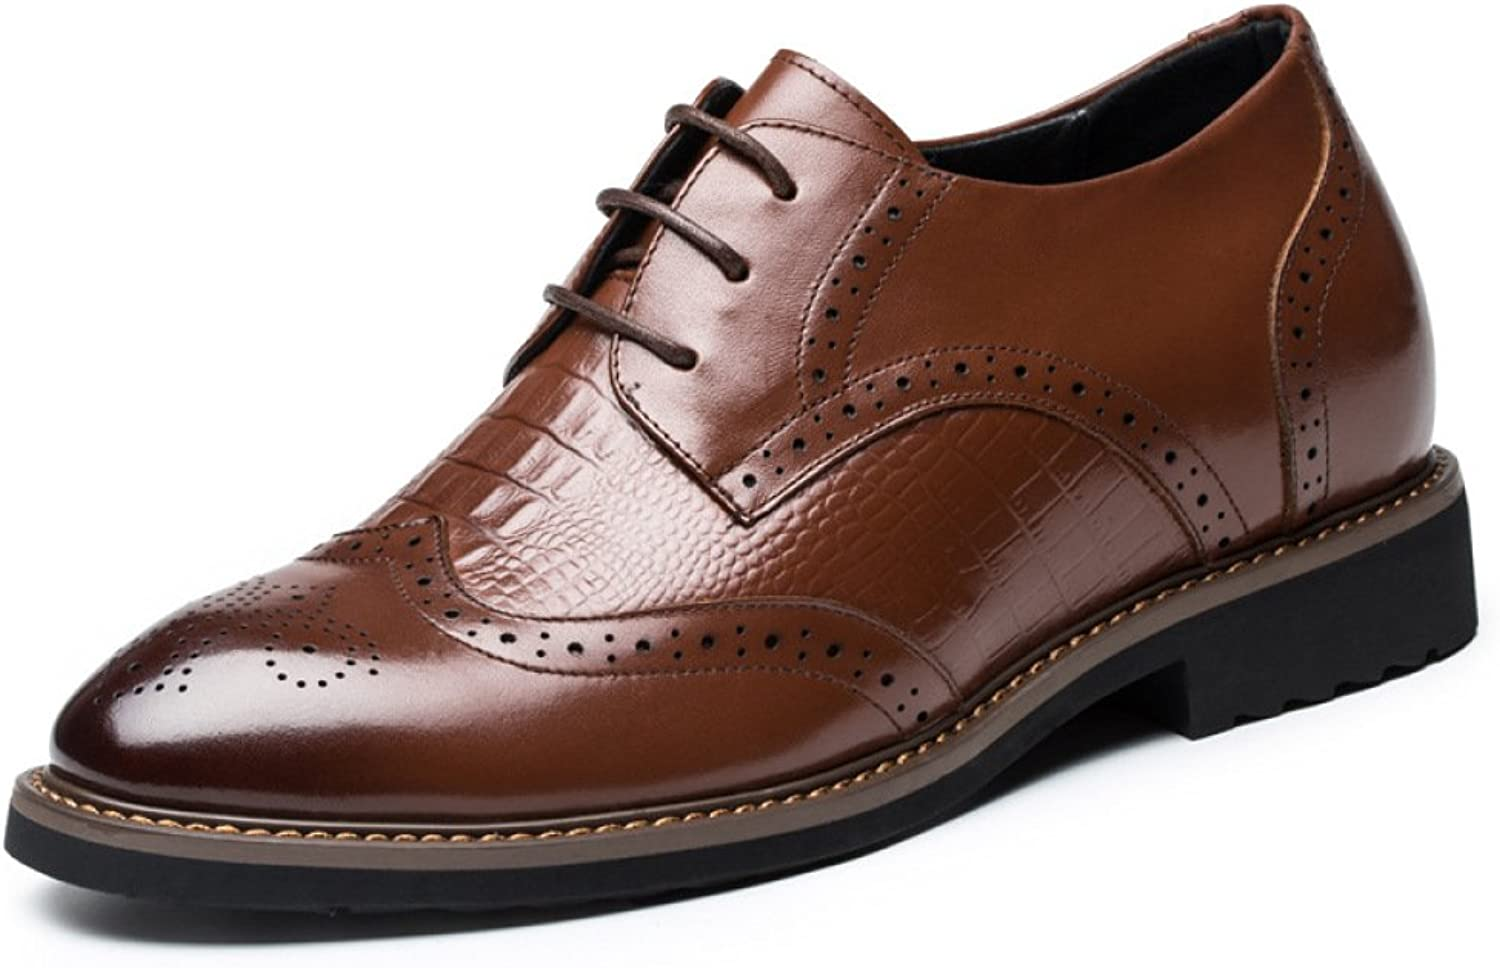 Men's Oxford shoes Carved Business Classic Formal Lace-ups Brogues For Men Classic Office Leather shoes